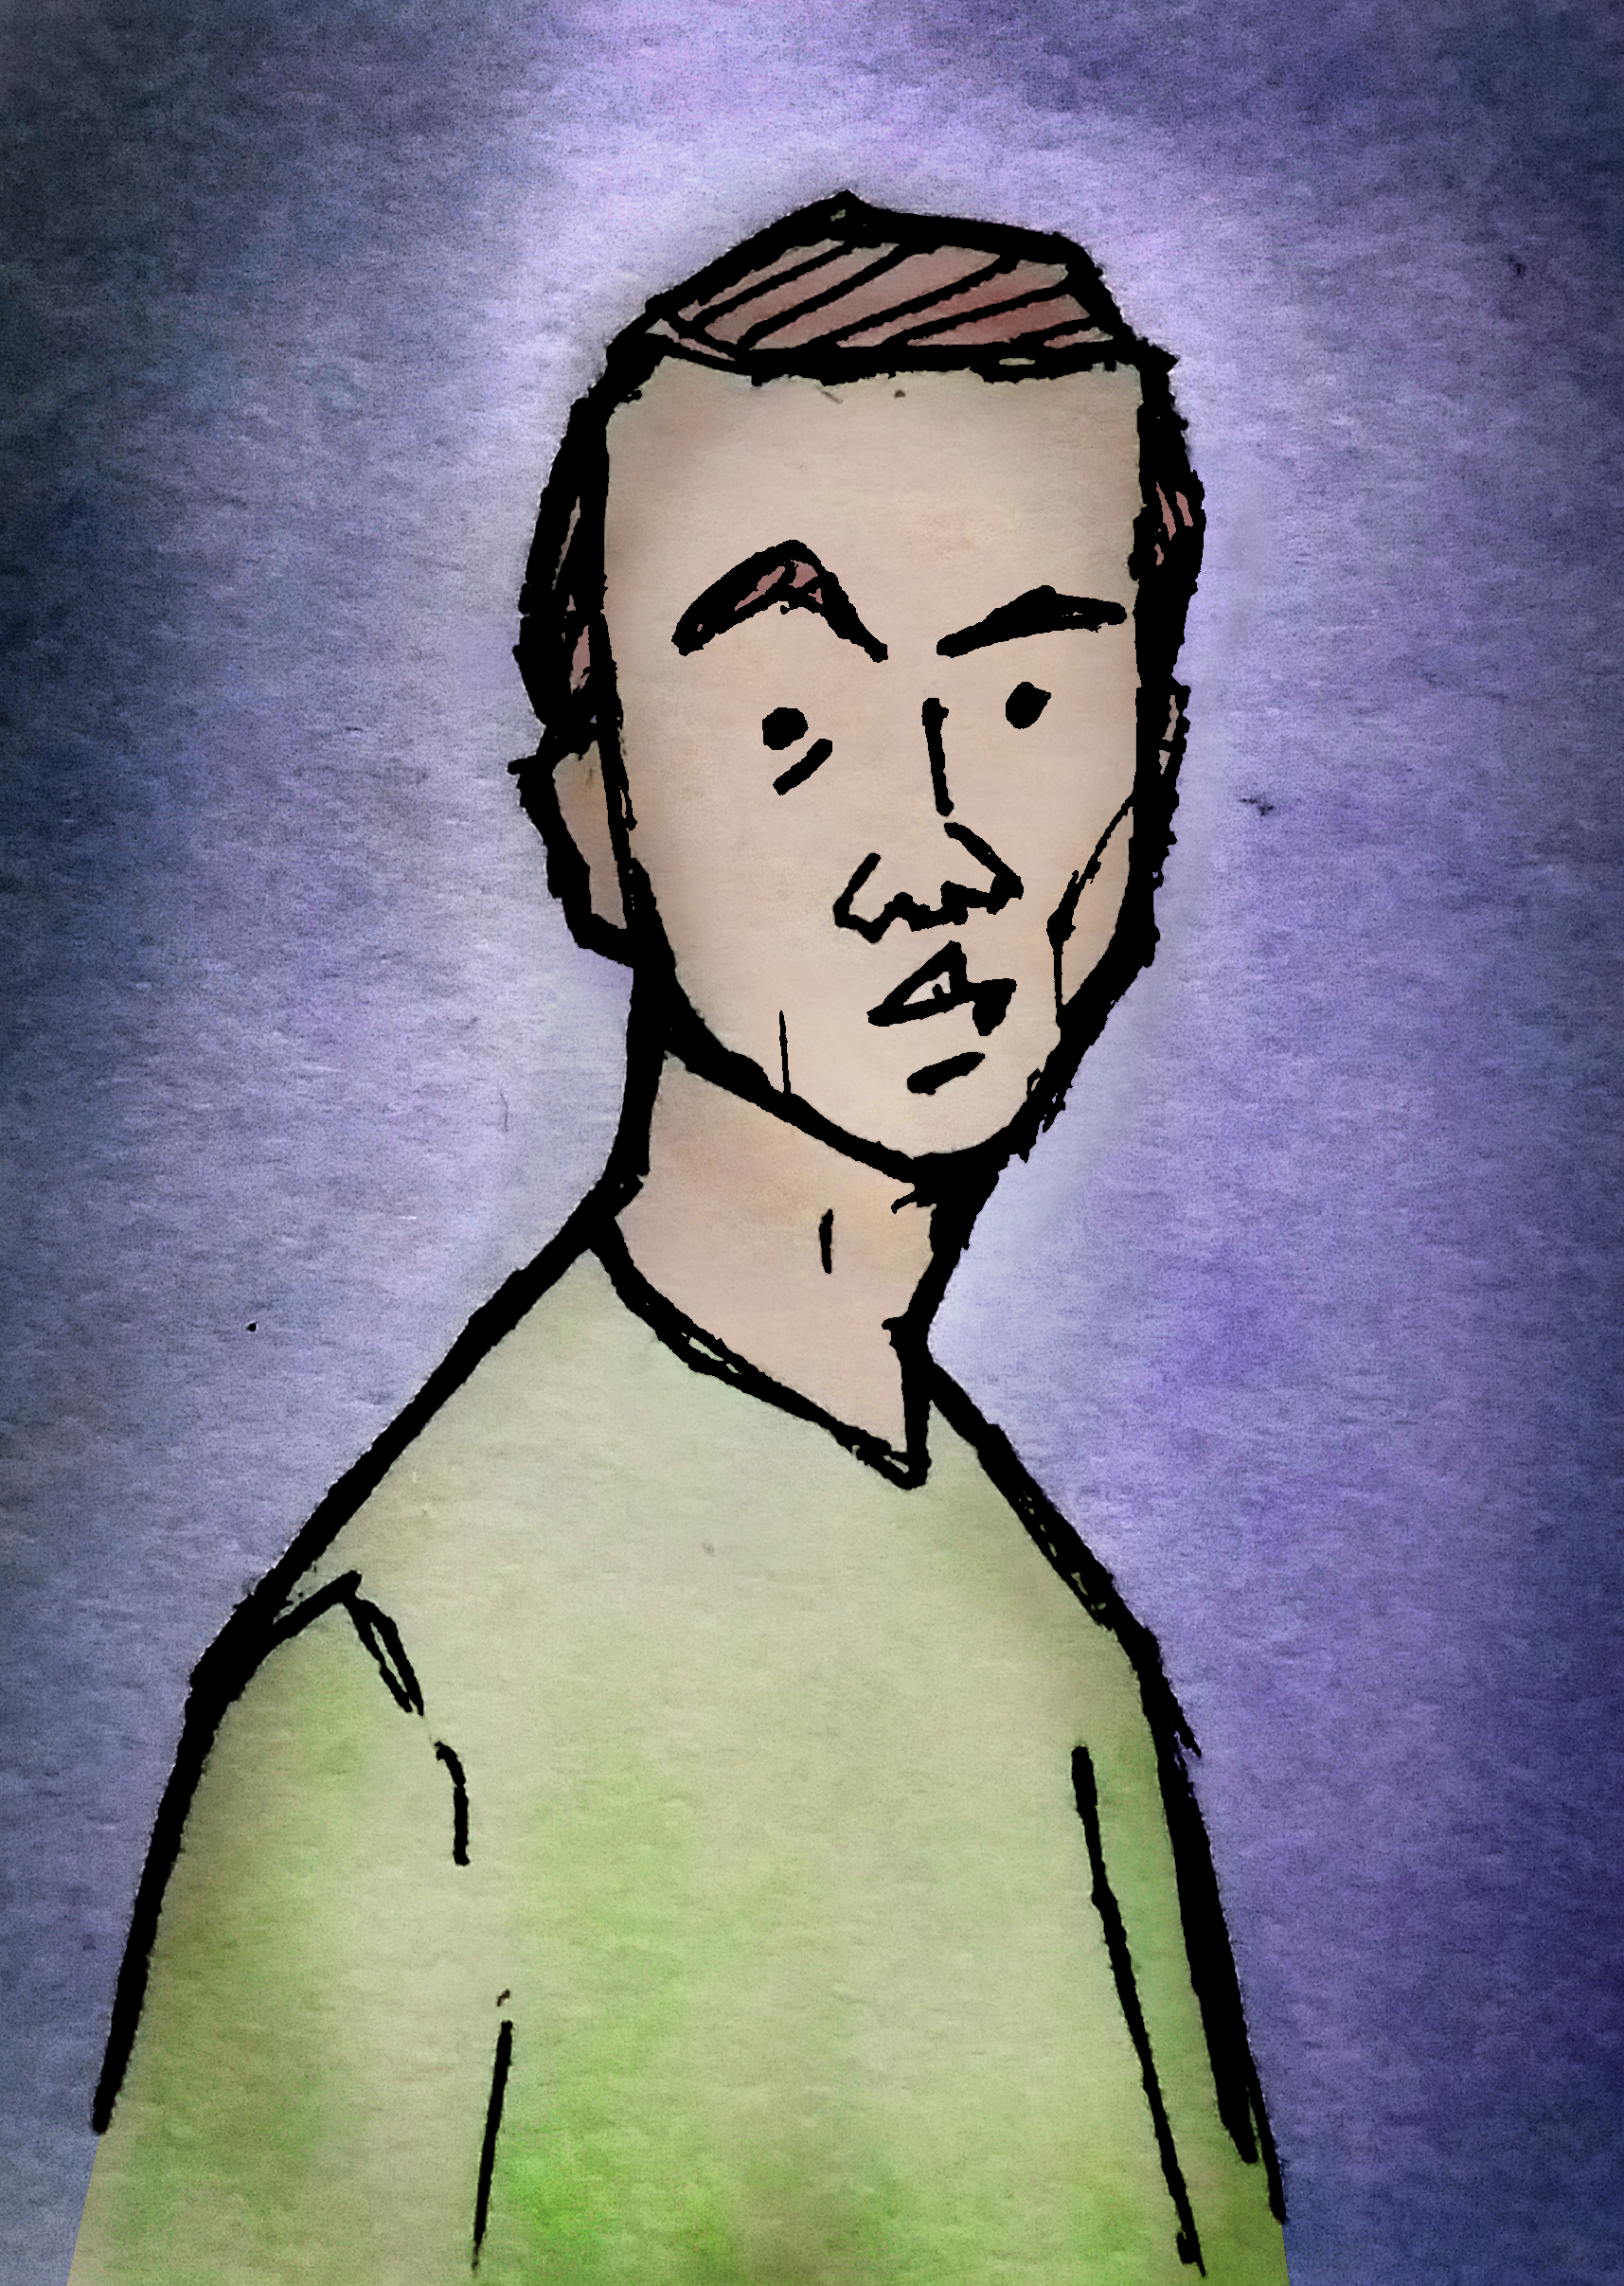 Co-host, podcast mixer and editor, and bio pic artist. Luke is also responsible for the title card for Episode 40.